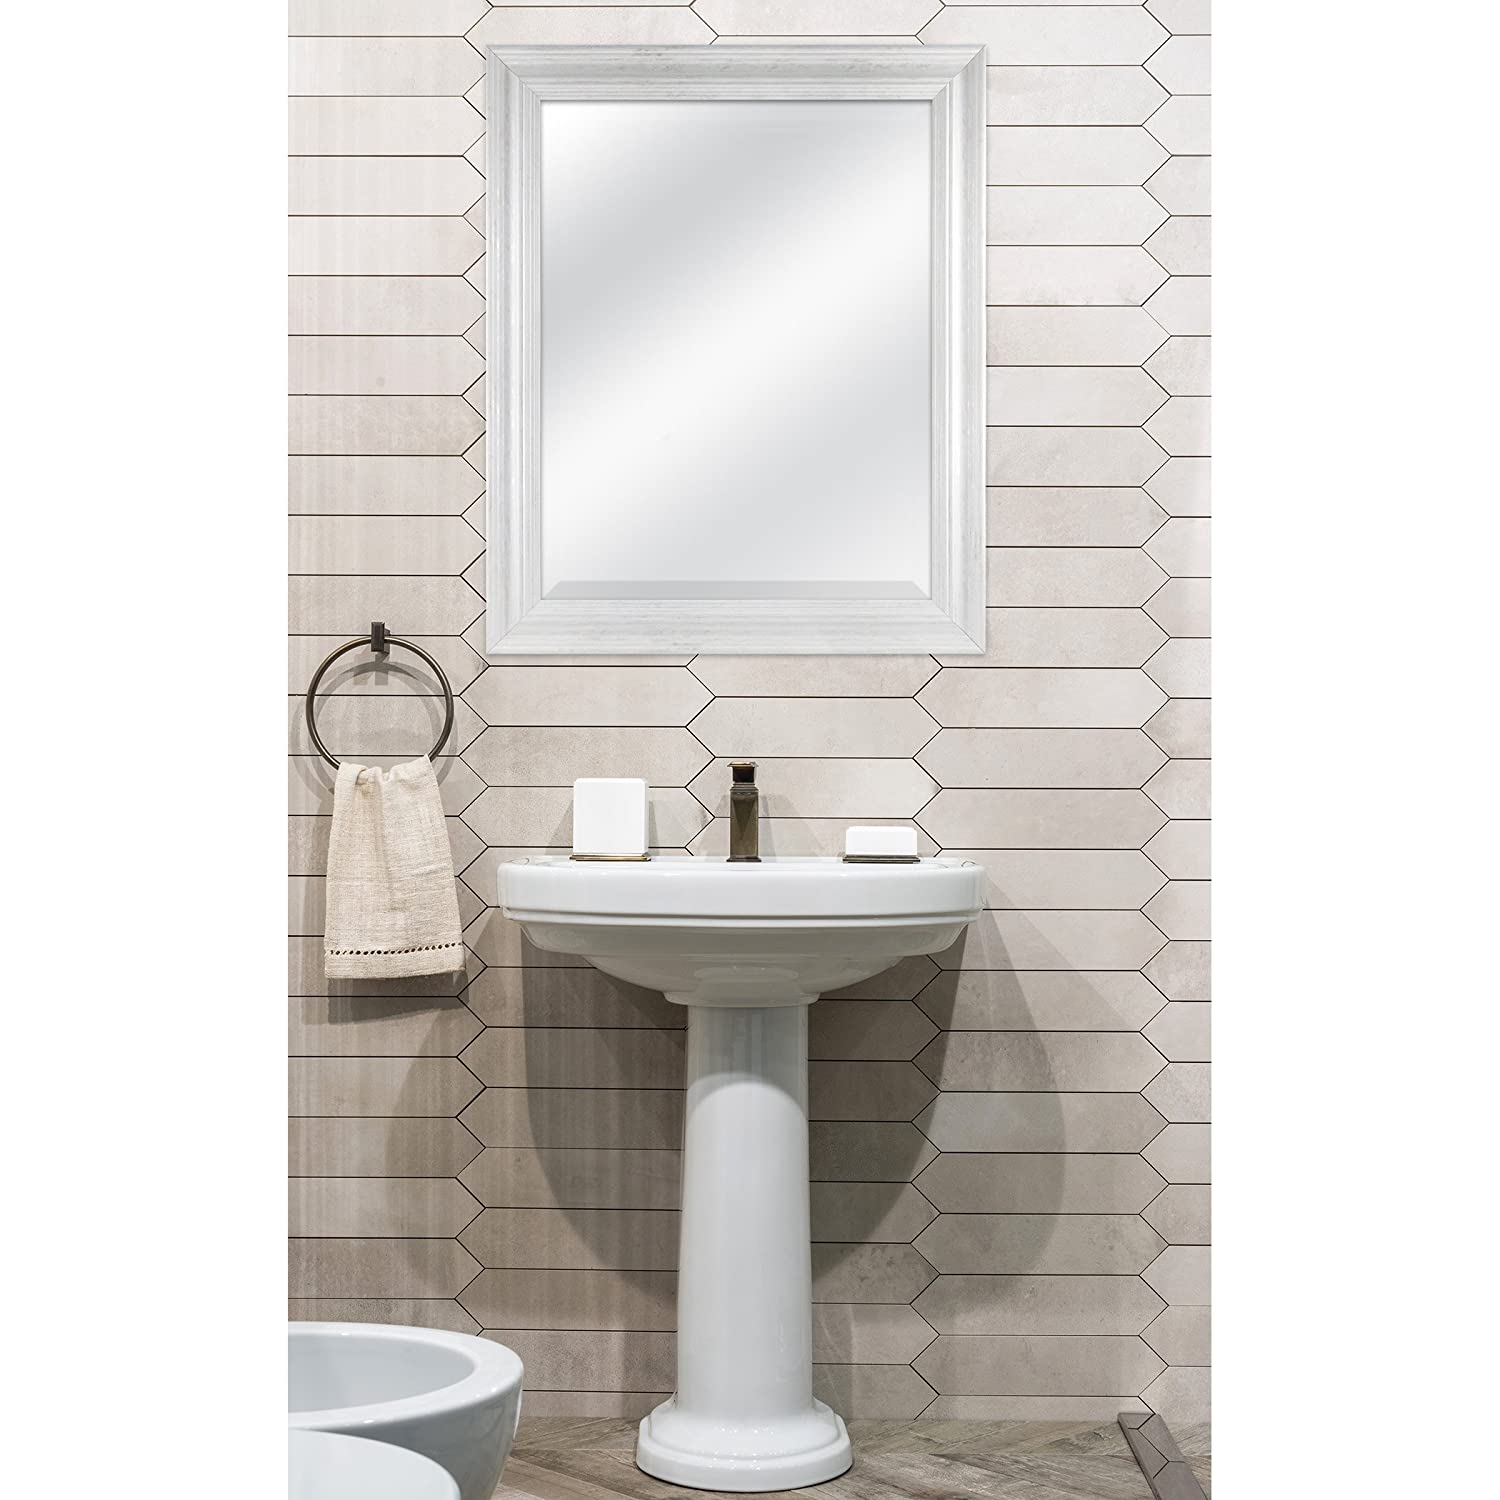 White Wash Finish 20548 MCS Industries MCS 22 by 28 inch Scoop Mirror 27.5 by 33.5 inch Outside Dimension